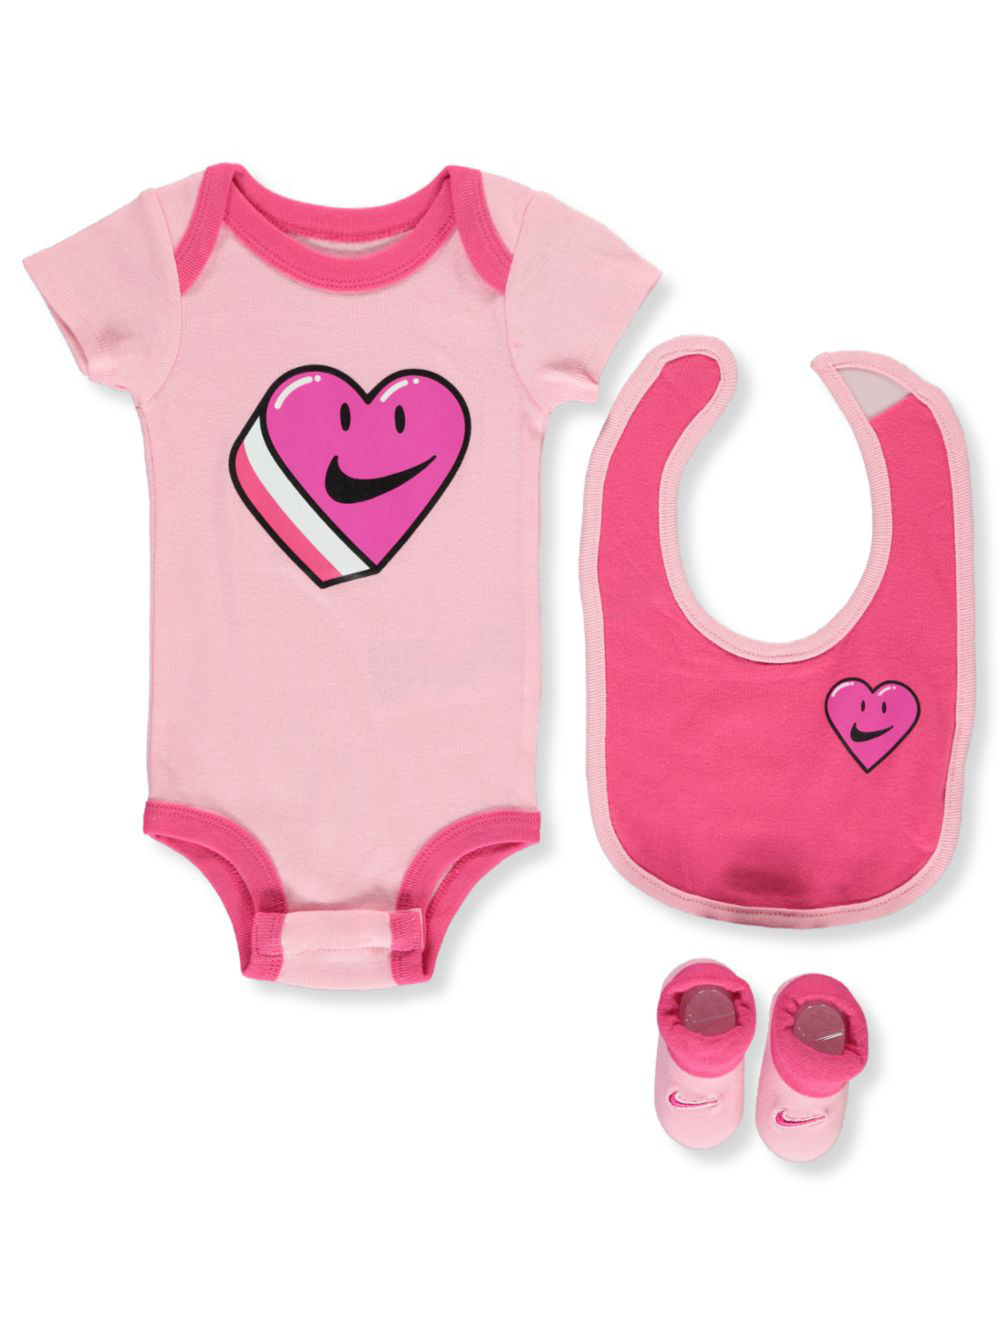 Baby Girls' 3-Piece Layette Gift Set